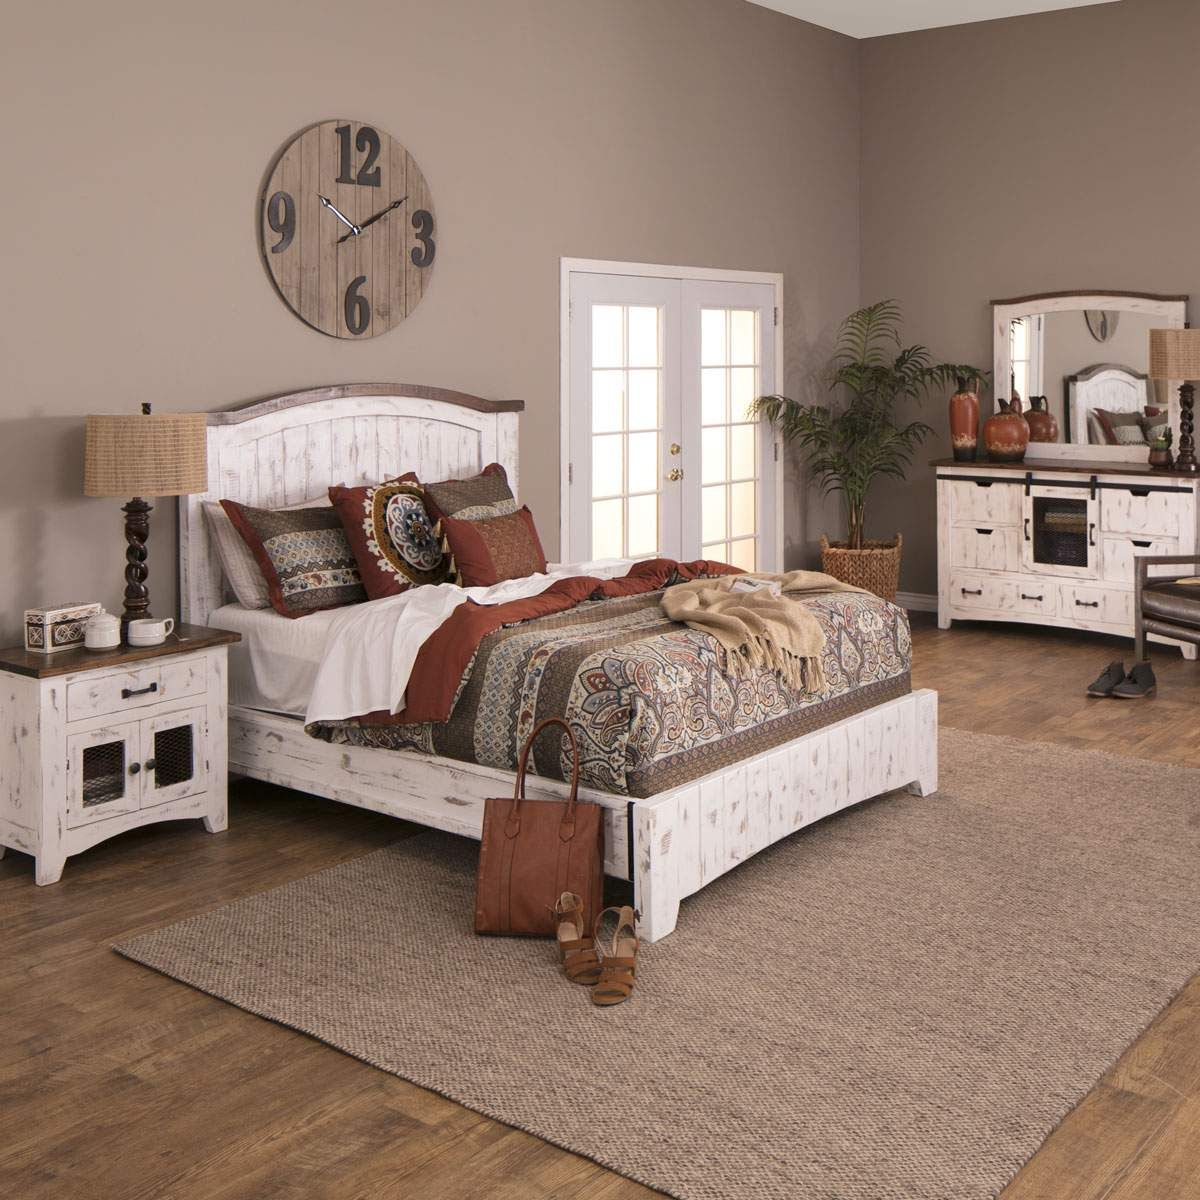 The Laid Back Style Of The Potter Bedroom Set Is Warm And